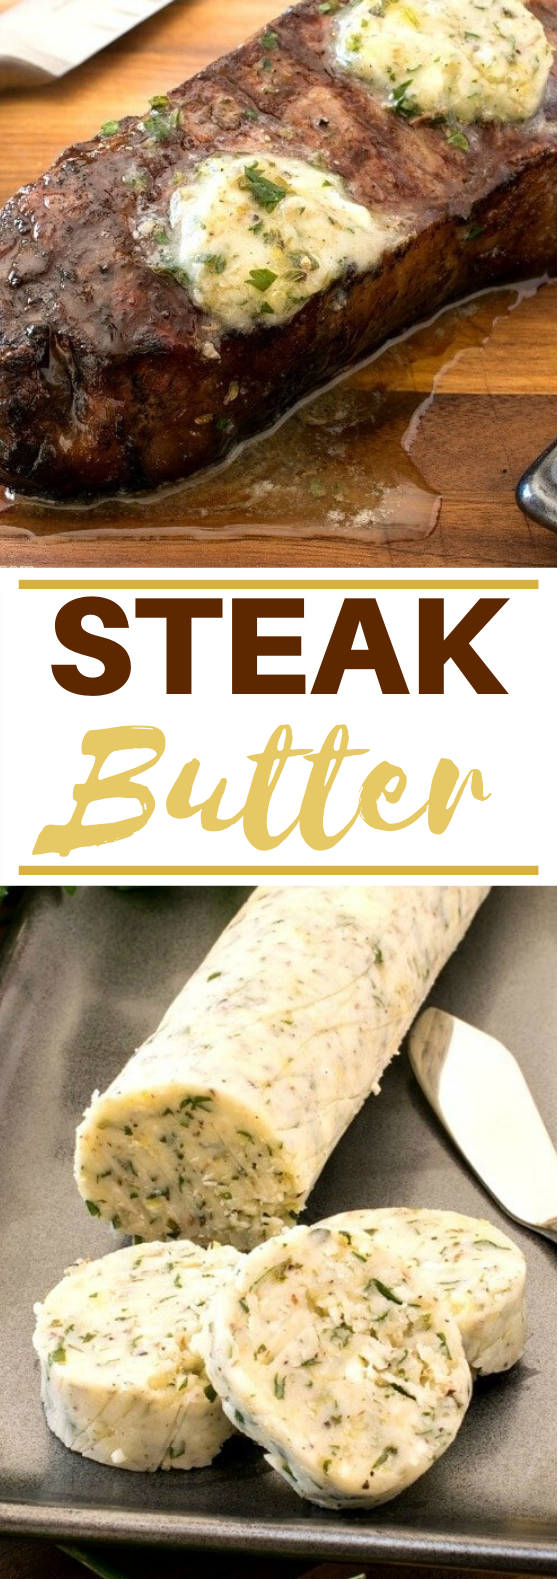 Steak Butter #dinner #recipes #grilling #steaks #sidedish